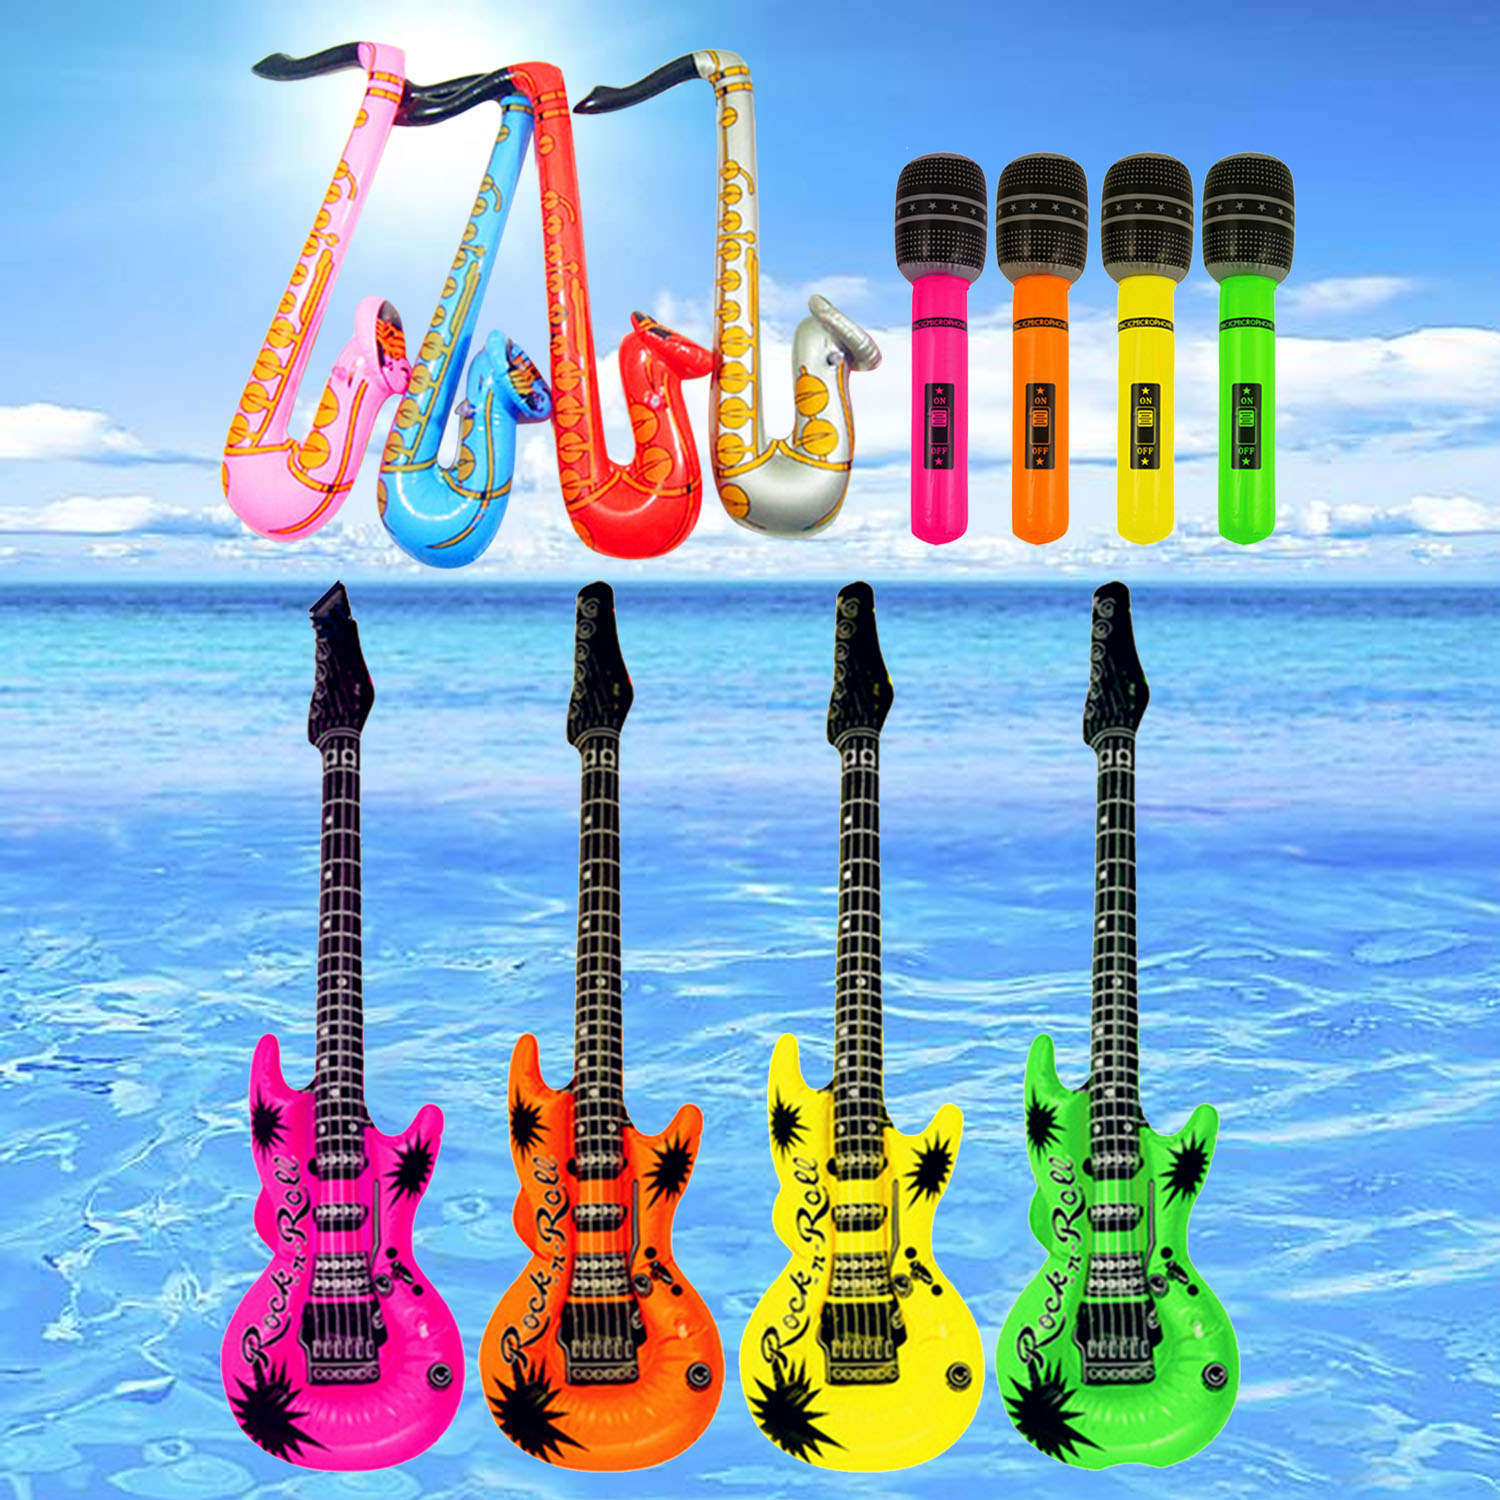 12Pcs Inflatable Guitar Saxophone Microphone Musical Toys Decorative Accessories for Swimming Pool Party Baby Home Decorations